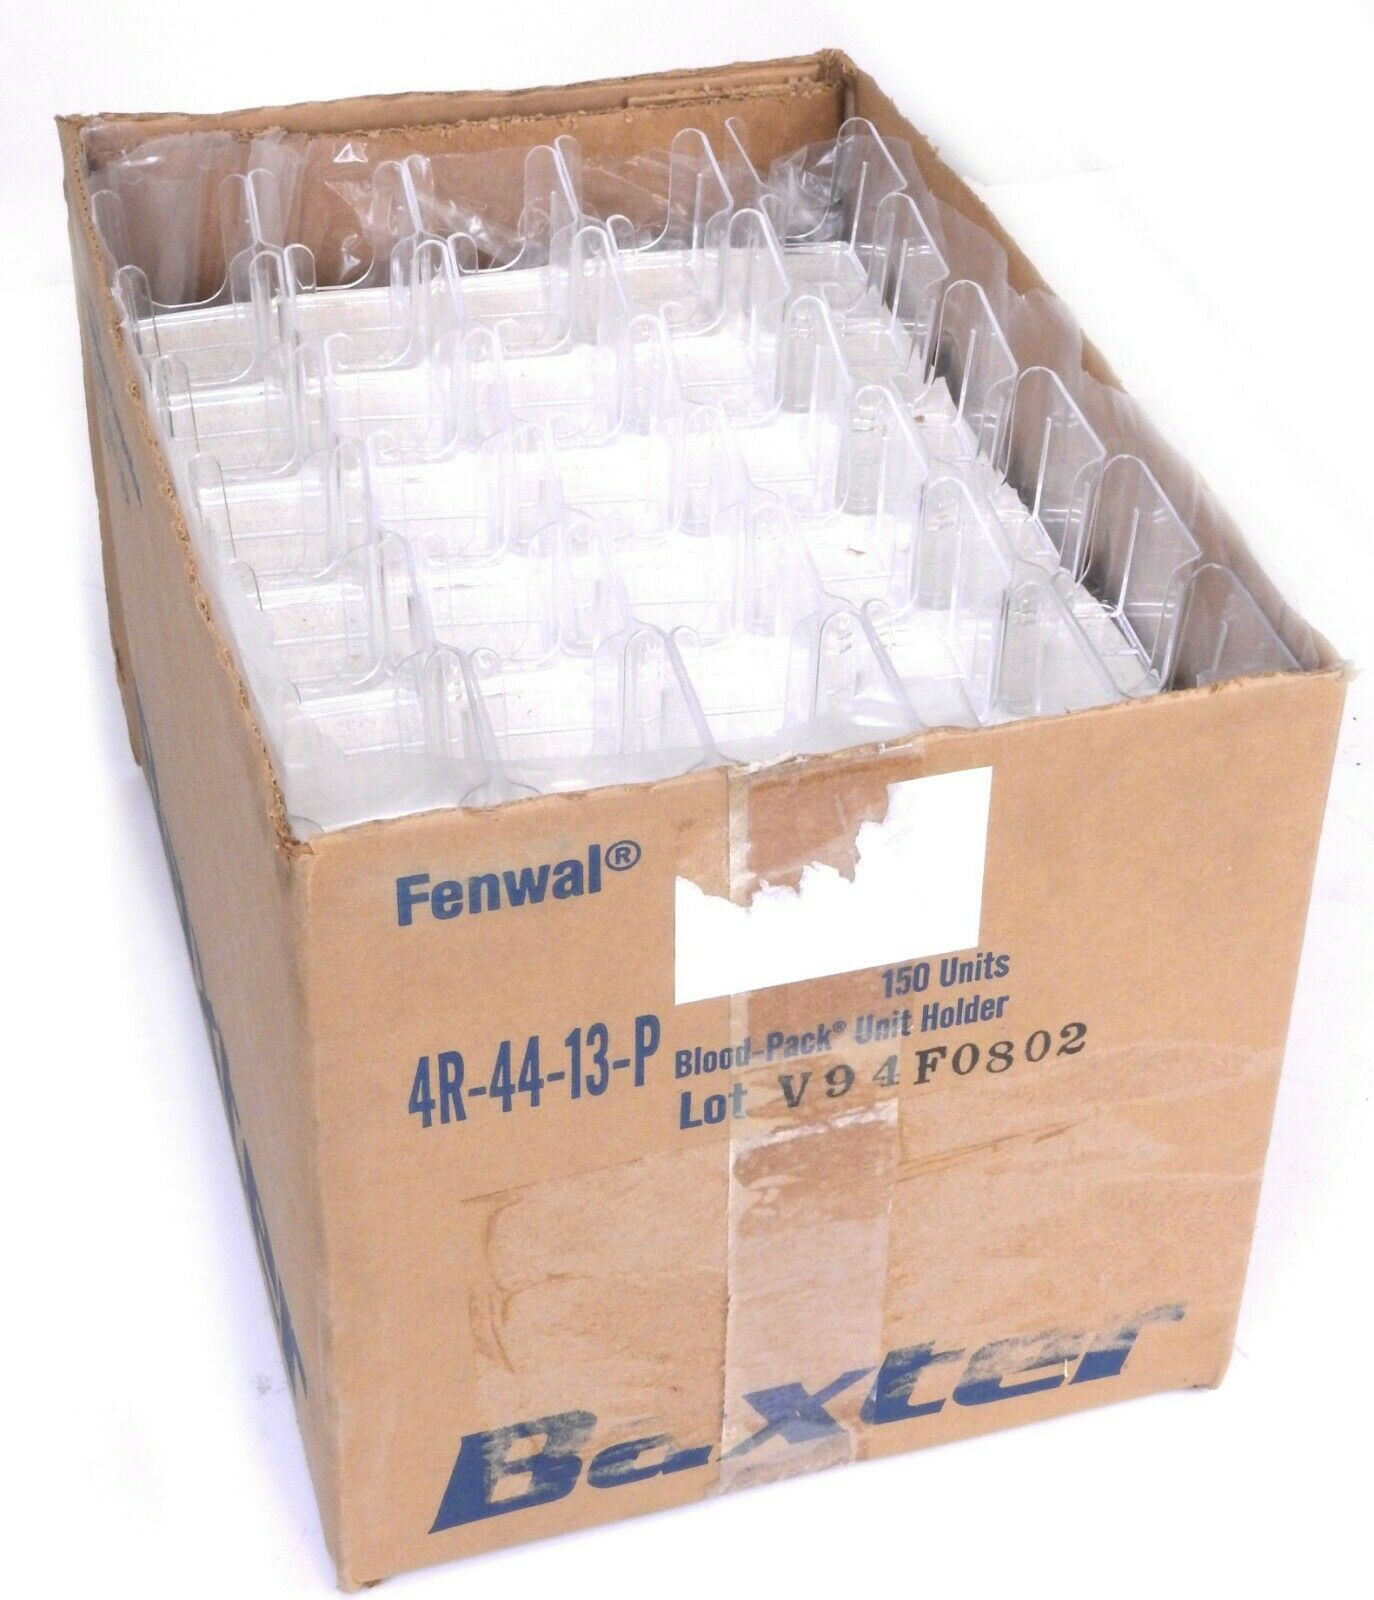 Box of 150 Units Baxter Fenwal 4R-44-13-P